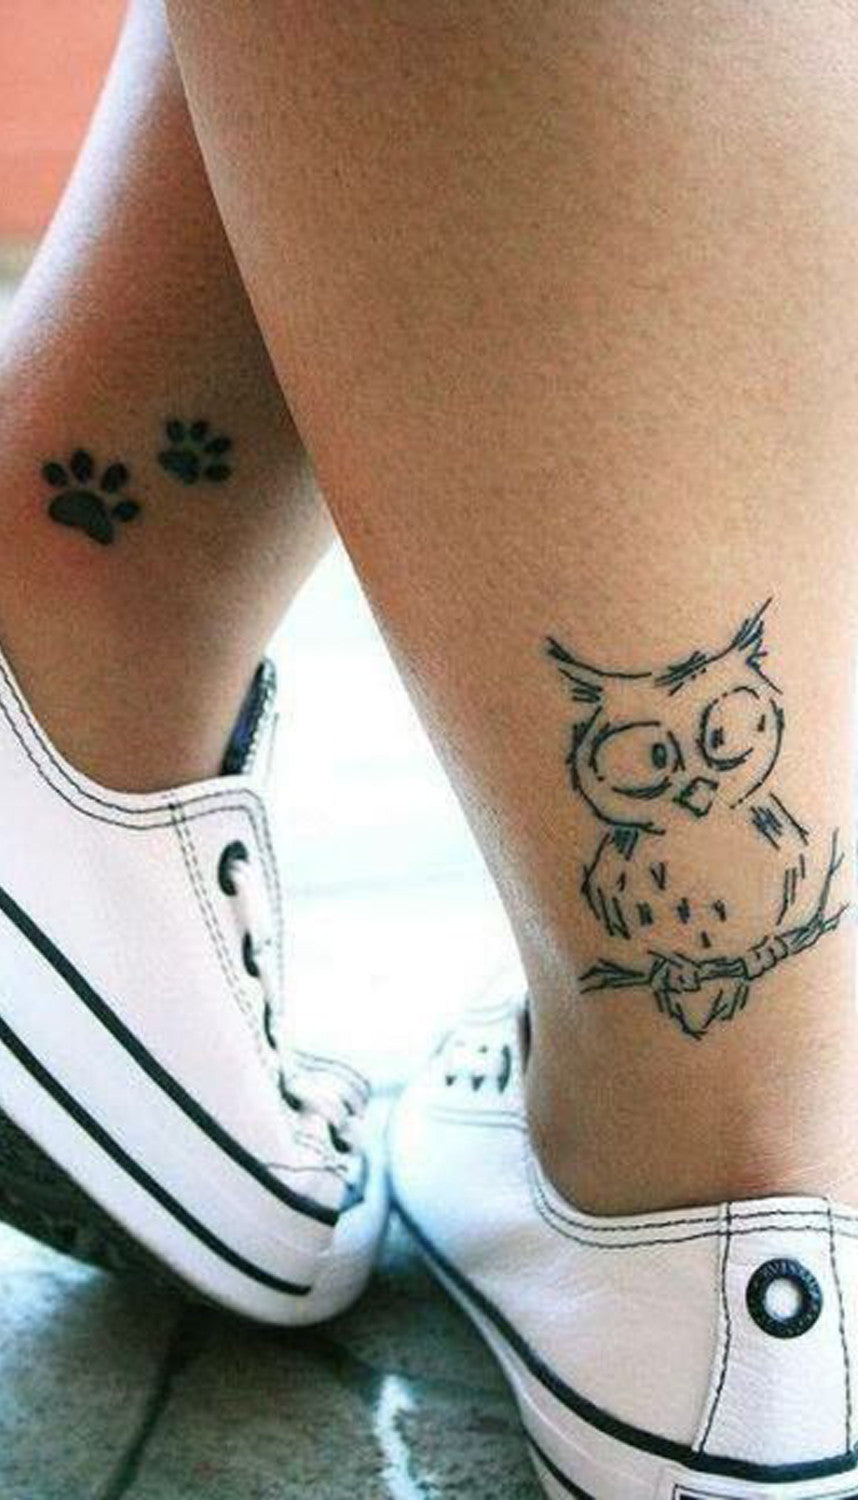 Cute Small Owl Leg Tattoo Ideas - Dog Paw Prints Ankle Tats - MyBodiArt.com